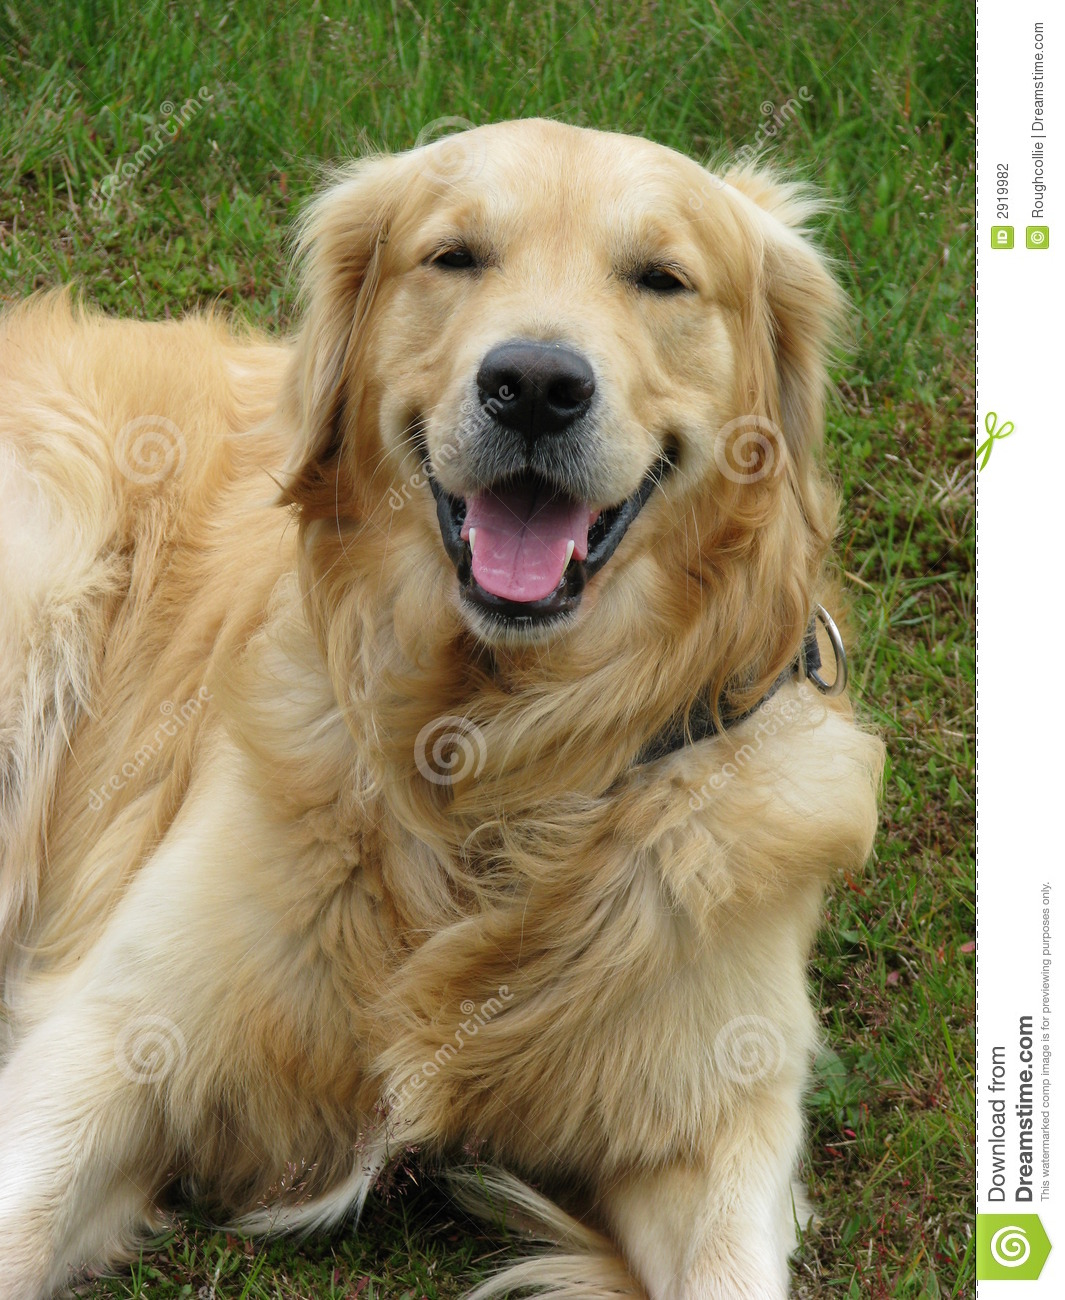 Happy Dog Golden Retriever Stock Photography - Image: 2919982 - photo#39